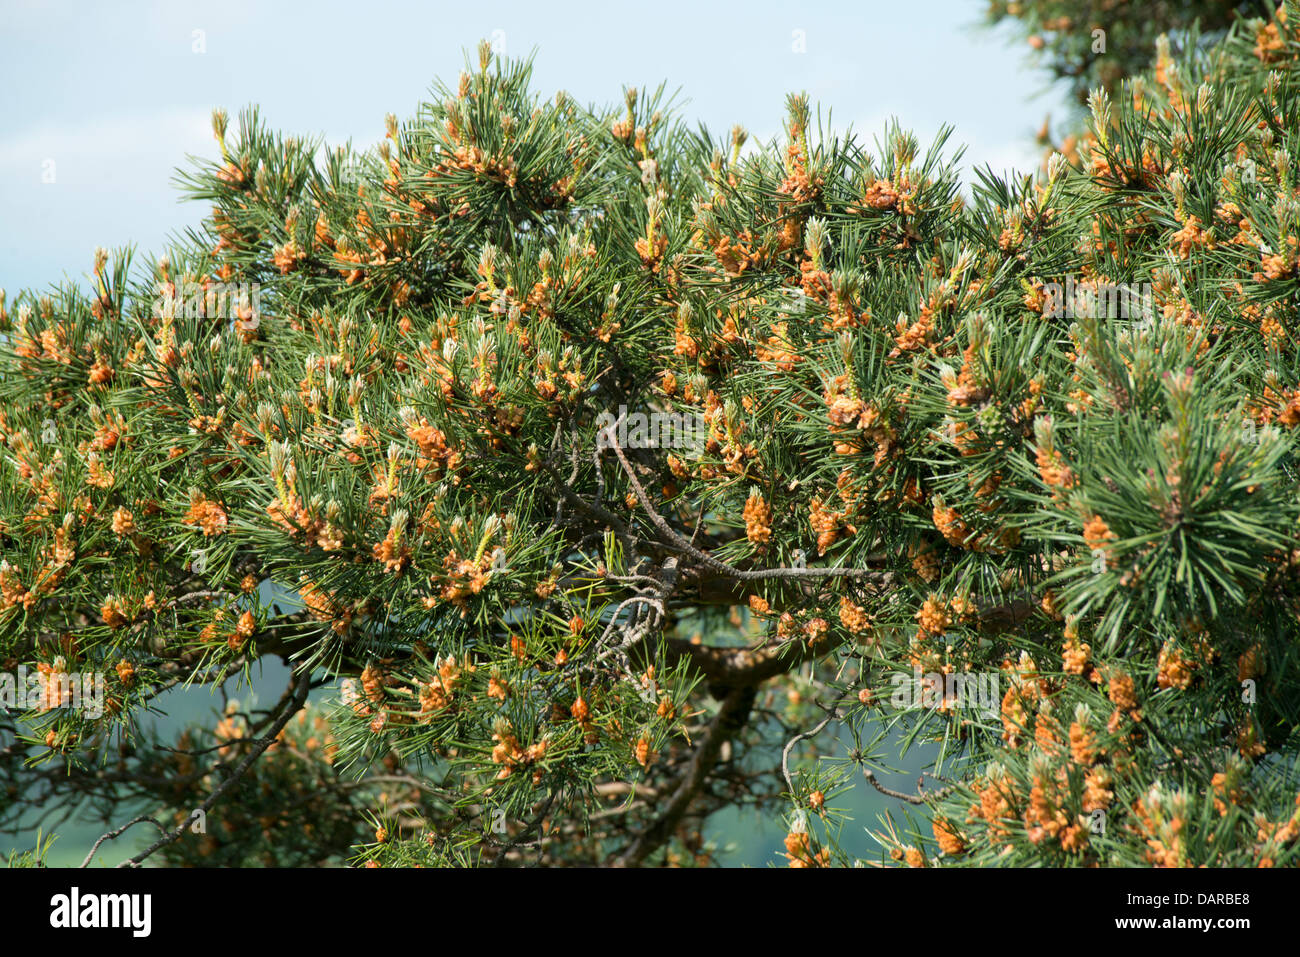 Hundreds of pinecones on a large branch of an evergreen tree against a sky background - Stock Image